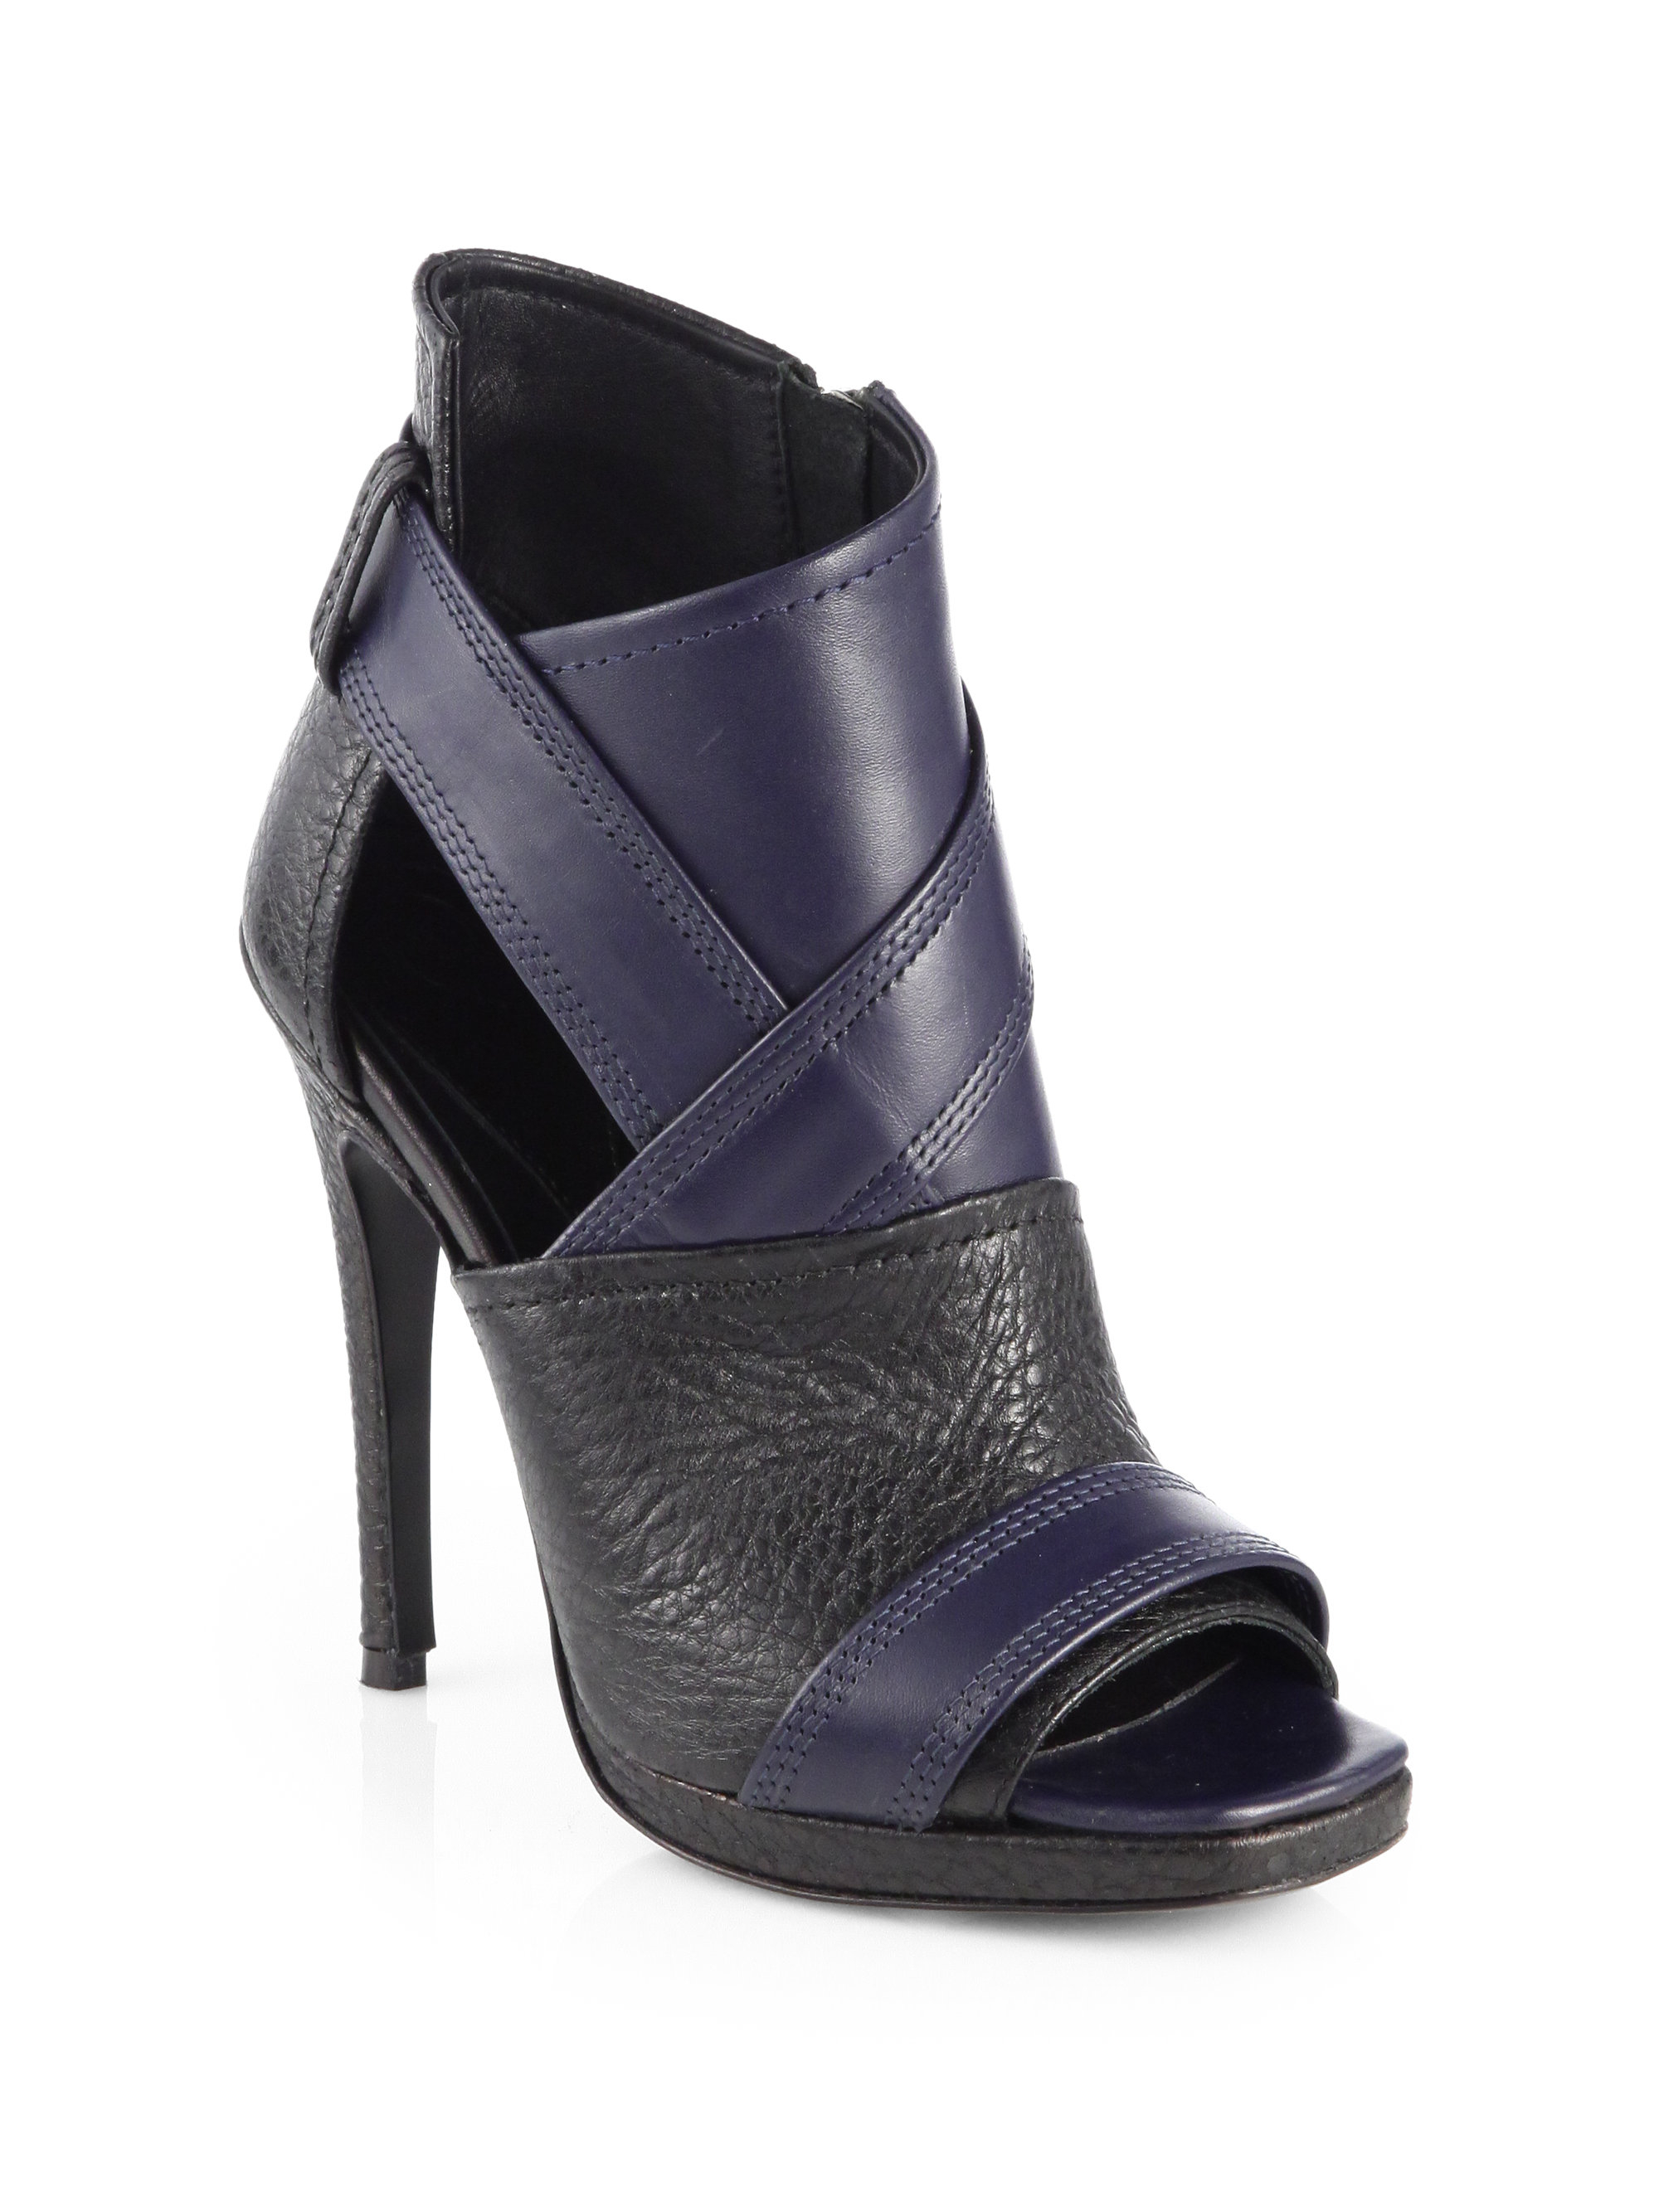 Mcq Lara Bicolor Leather Open-toe Ankle Boots in Black